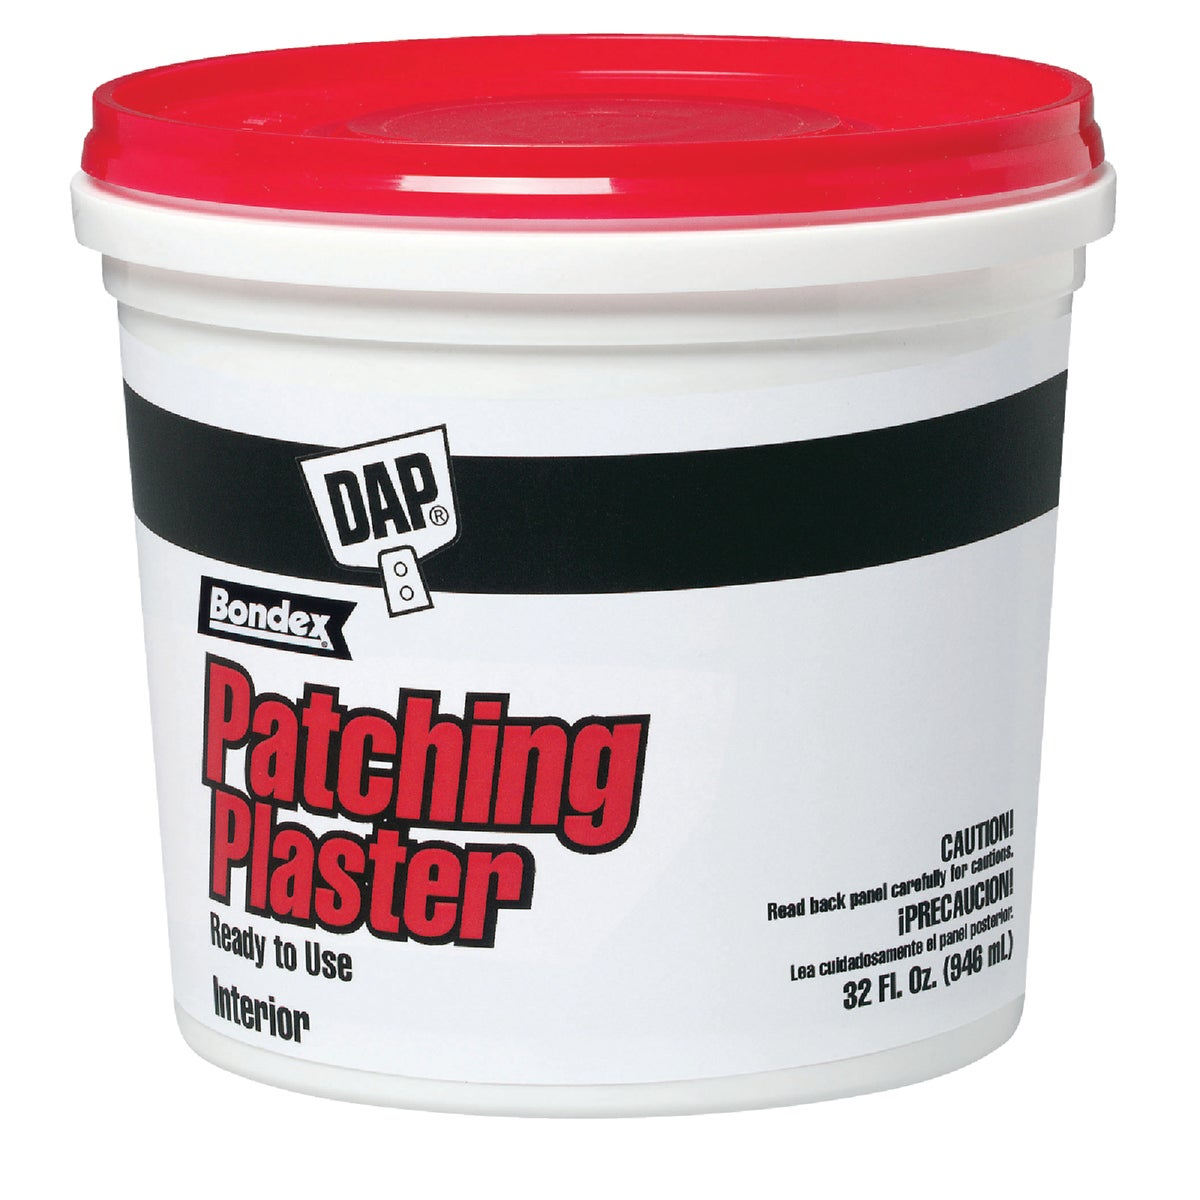 INT PATCHING PLASTER - 52084 by Dap Inc